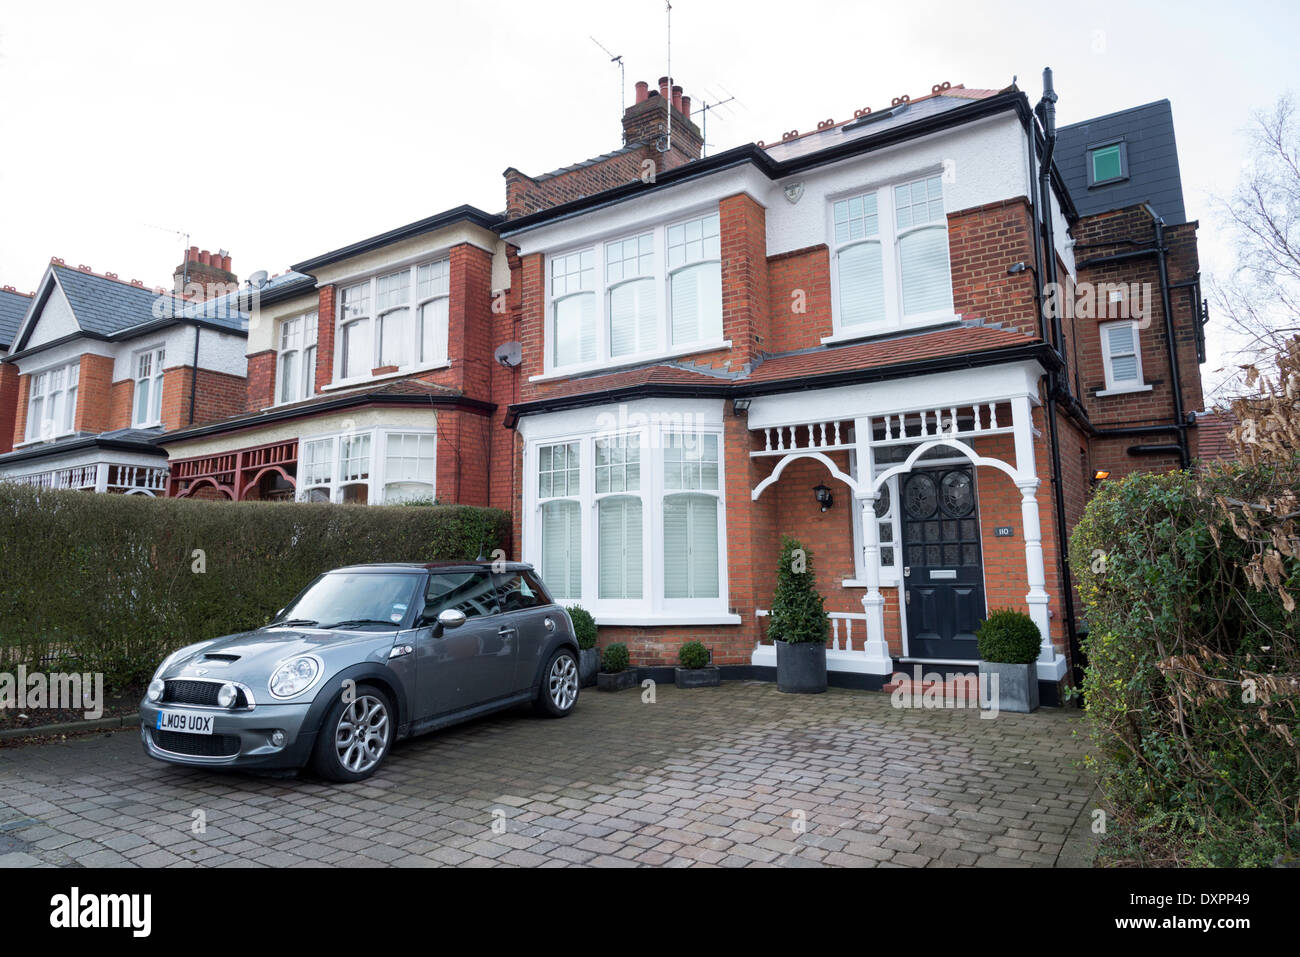 Car parked in paved front garden of a house, Muswell Hill, North London, England, UK - Stock Image